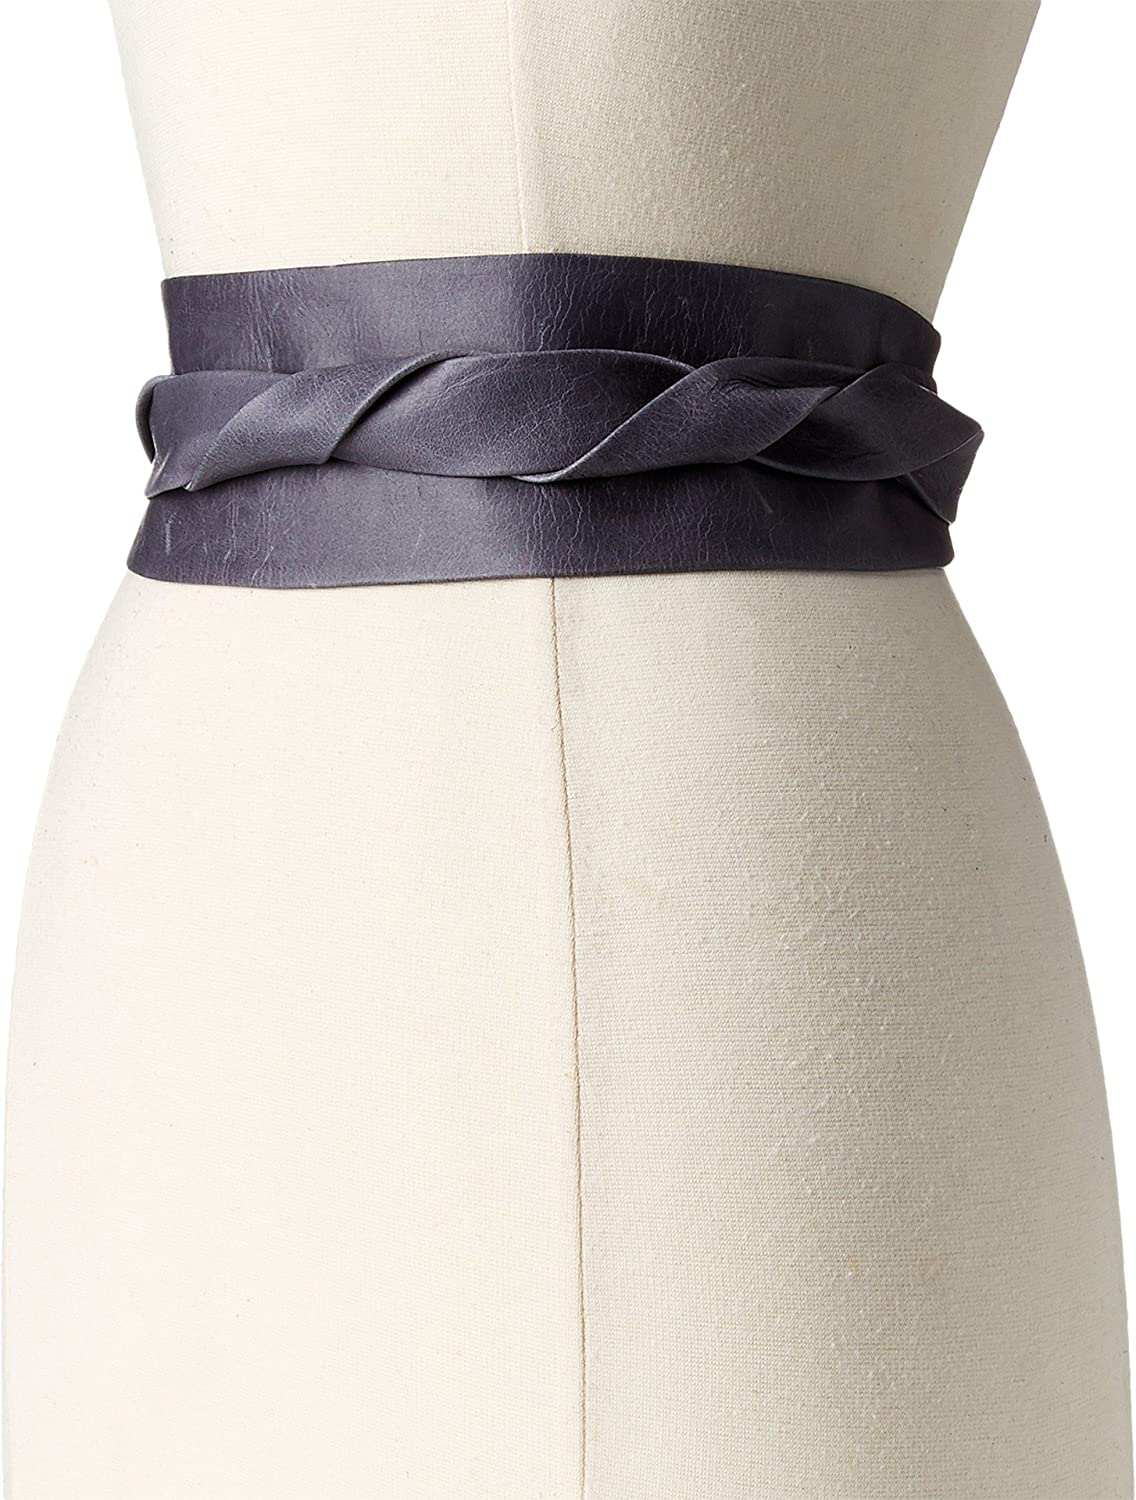 ADA Collection Women's Obi Classic Wrap Grey One Size